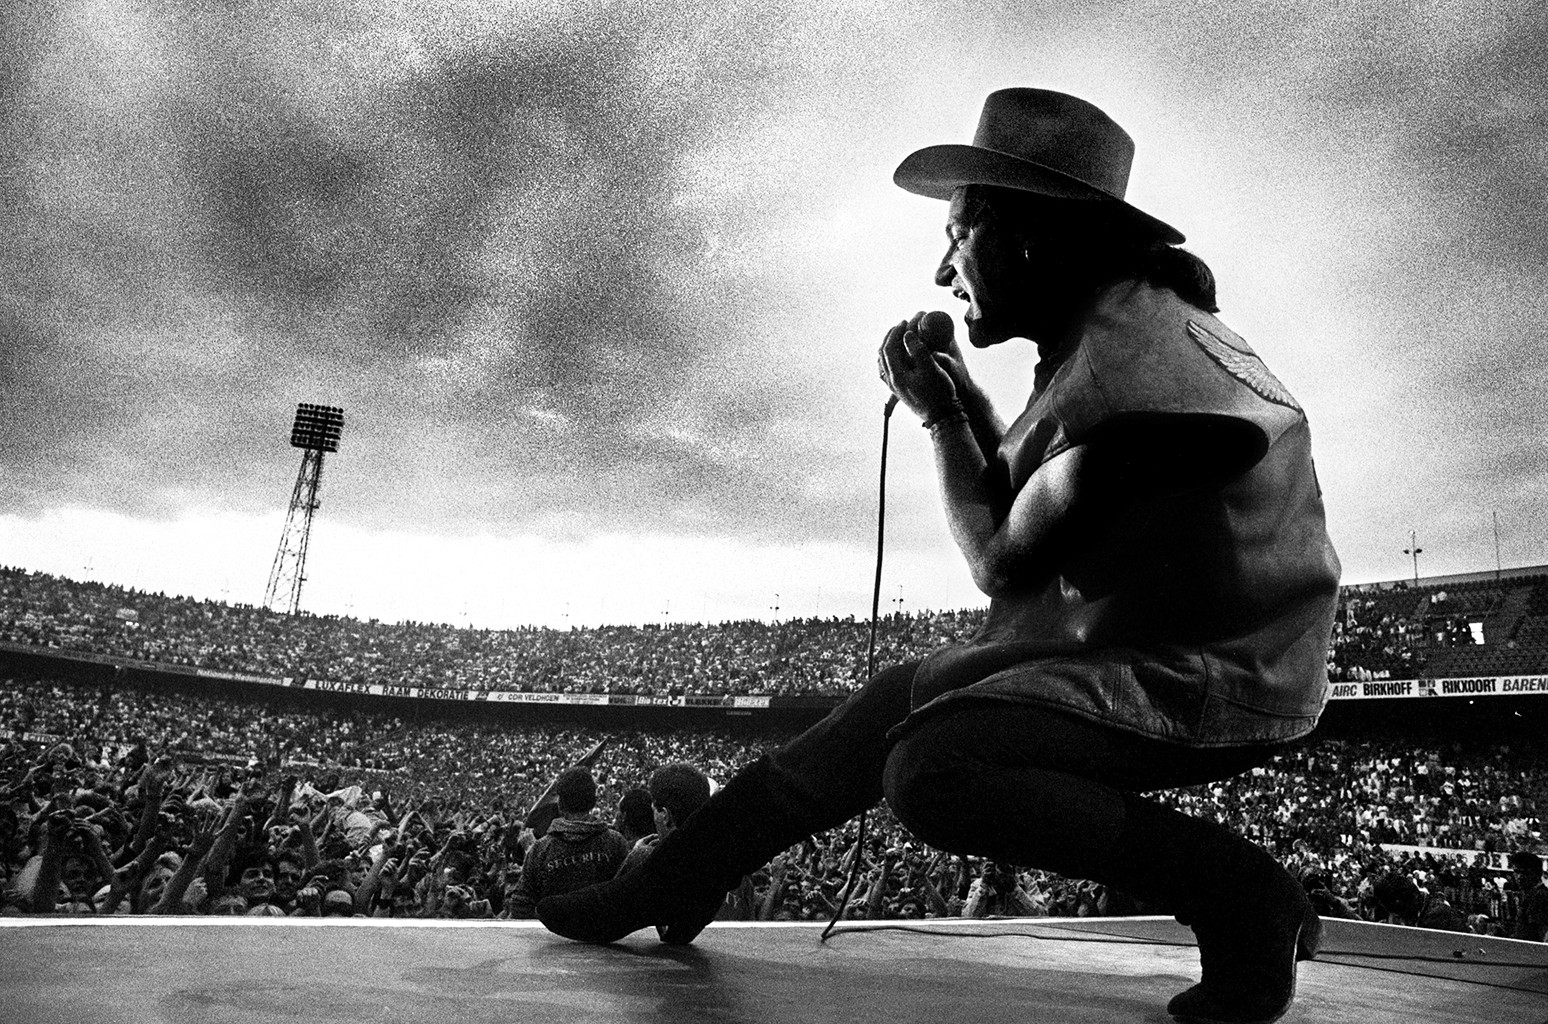 Bono of U2 performs during The Joshua Tree tour.